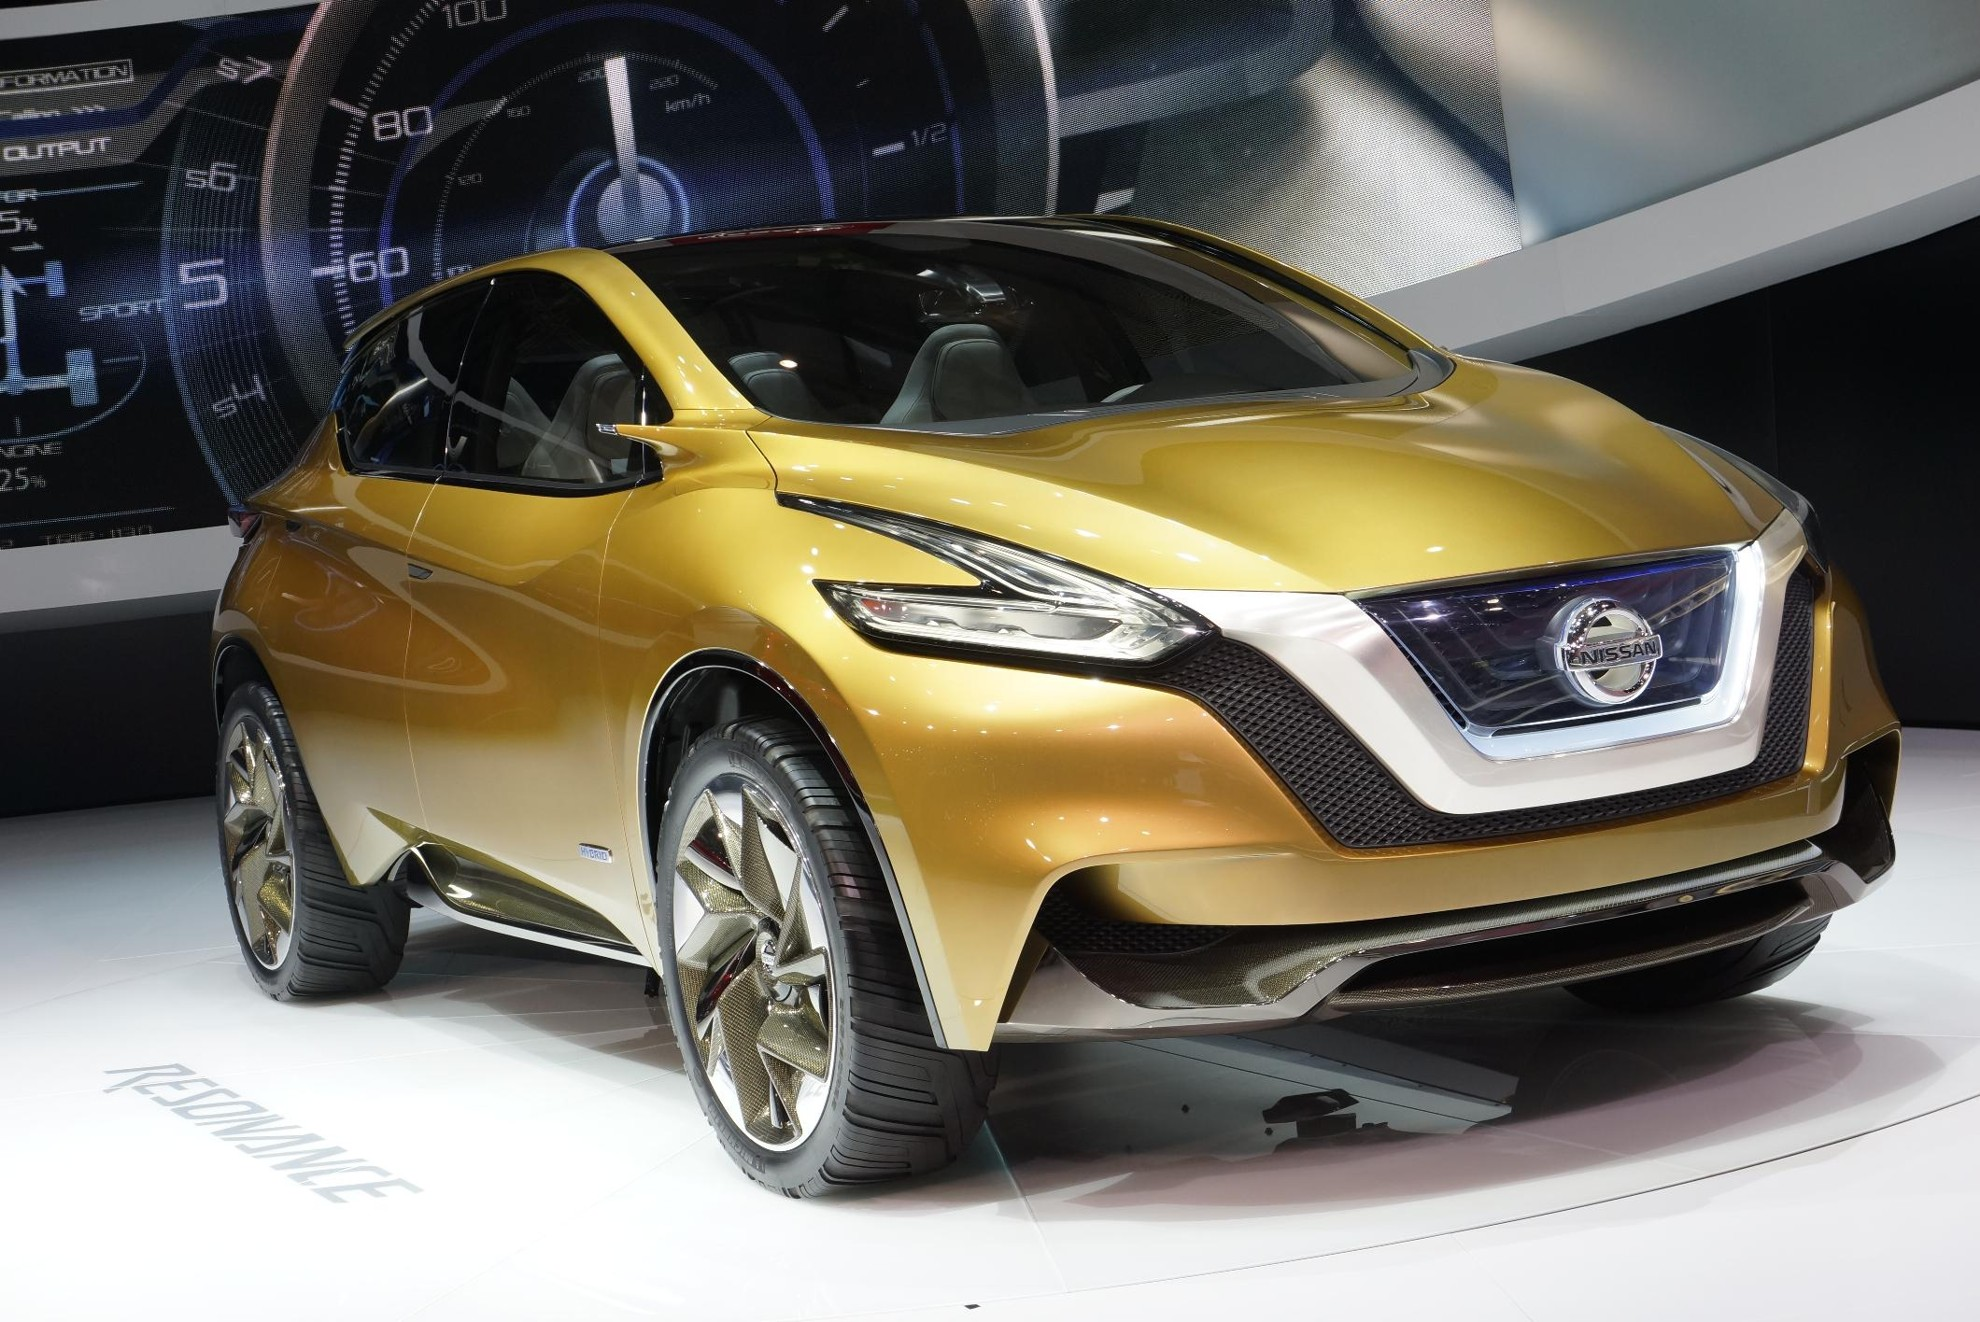 Nissan Resonance 2013 Geneva Motor Show